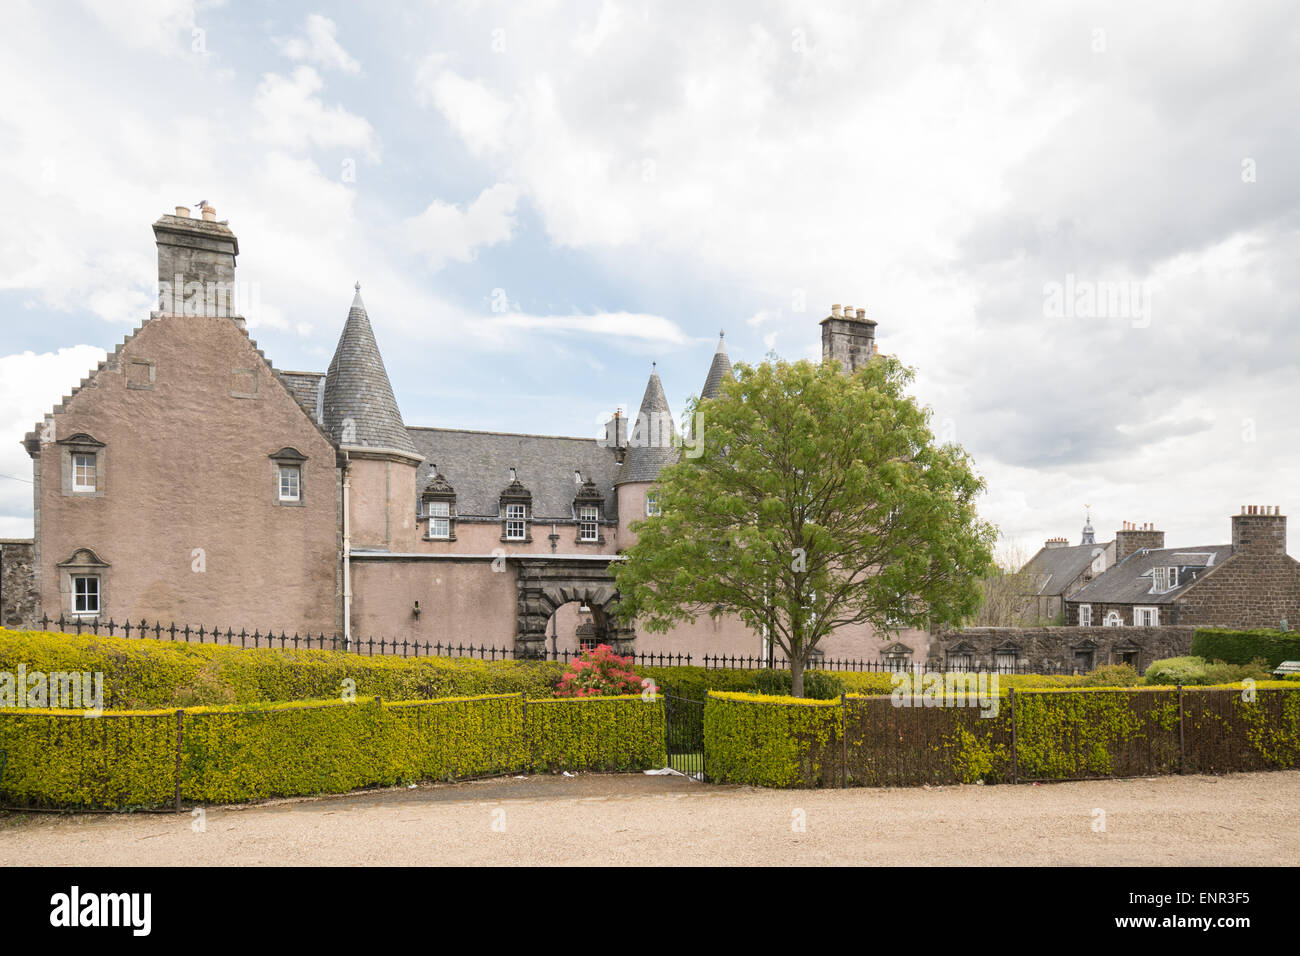 Argyll's Lodging - Scotland's most complete example of a 17th century townhouse - Stock Image